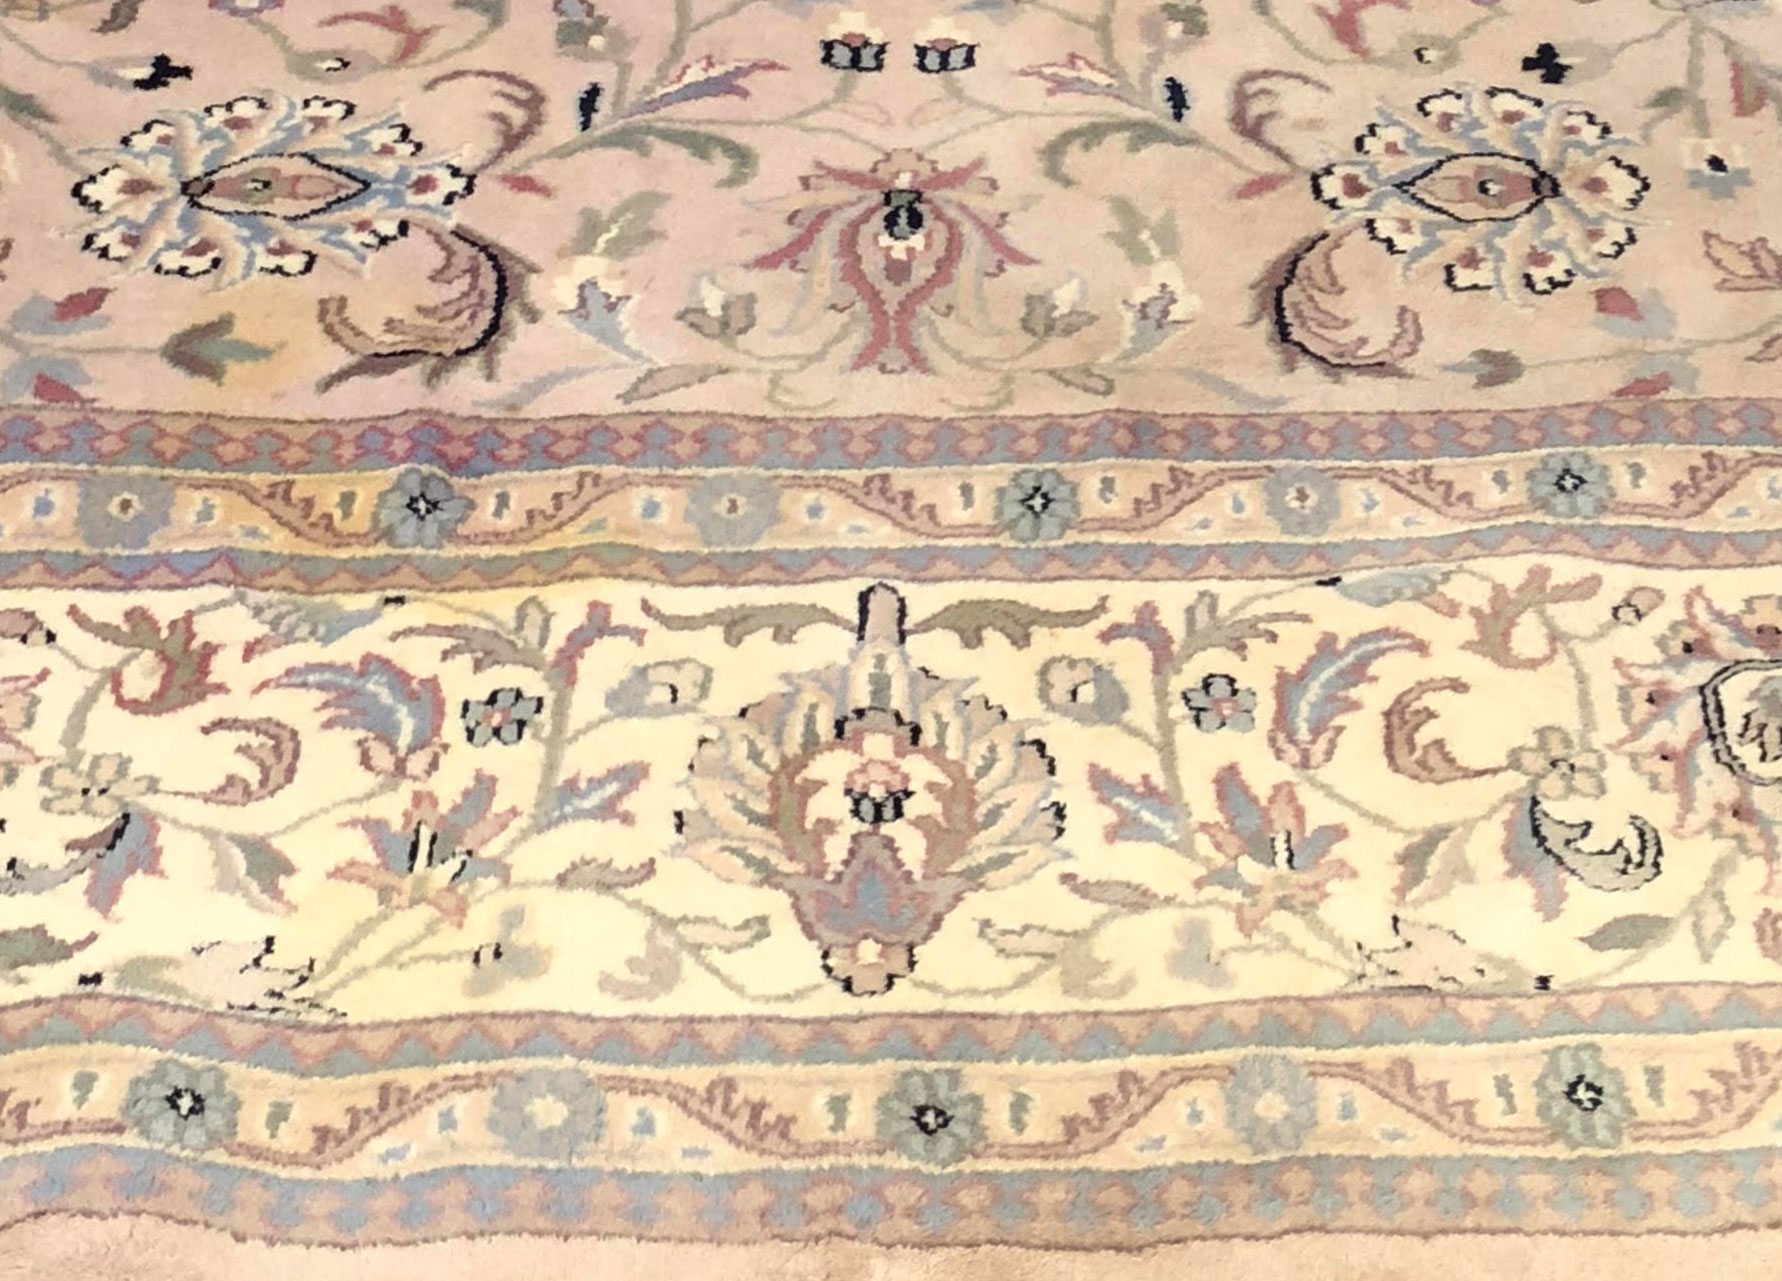 Before-Sun faded and stained Kashan Oriental, Full Color Restoration